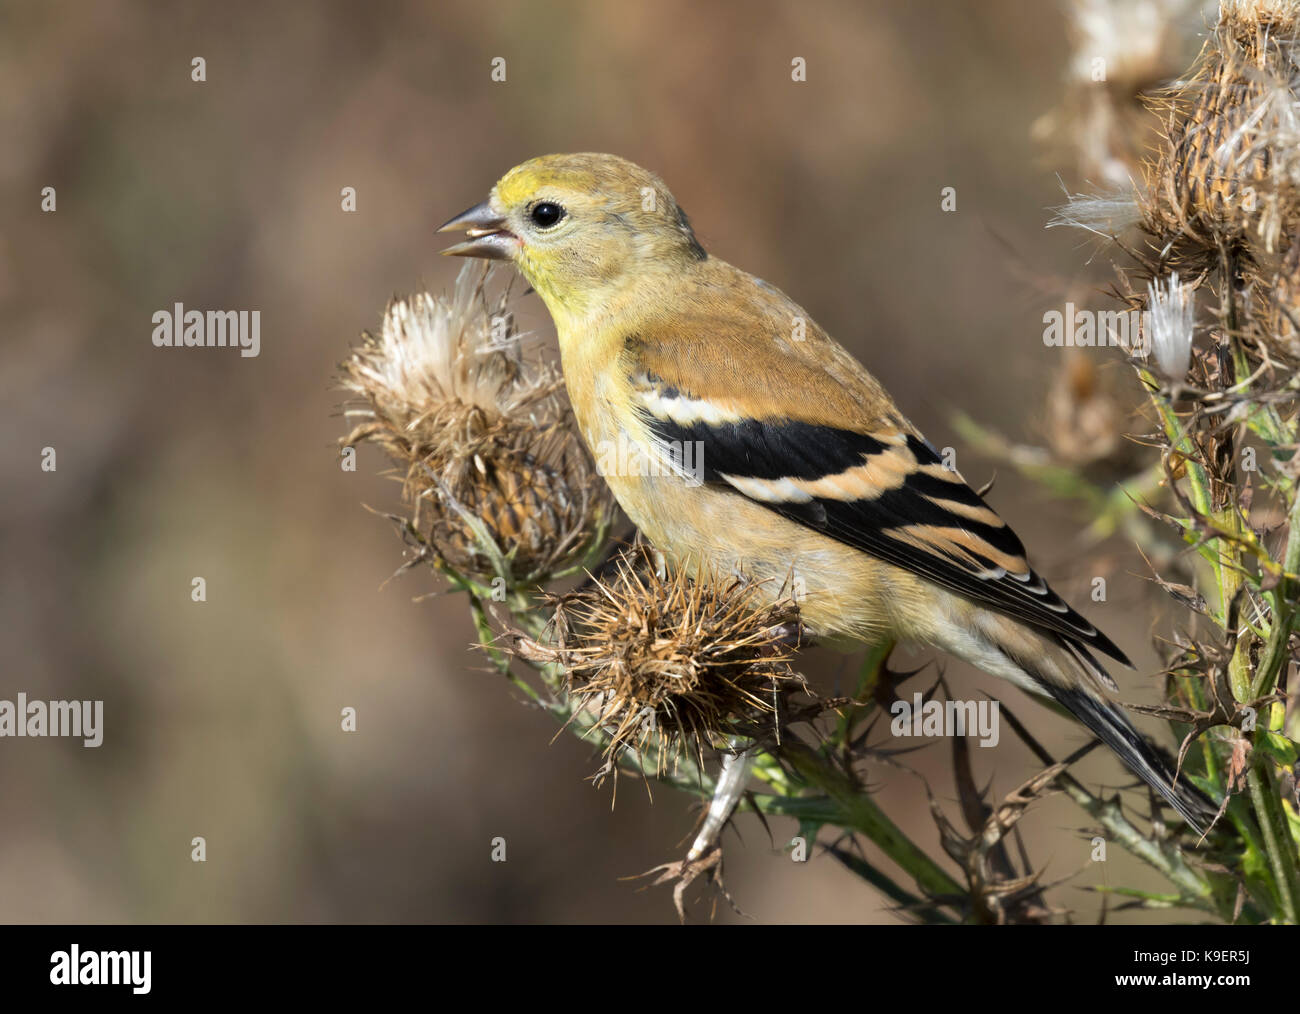 The American goldfinch (Spinus tristis) - Stock Image